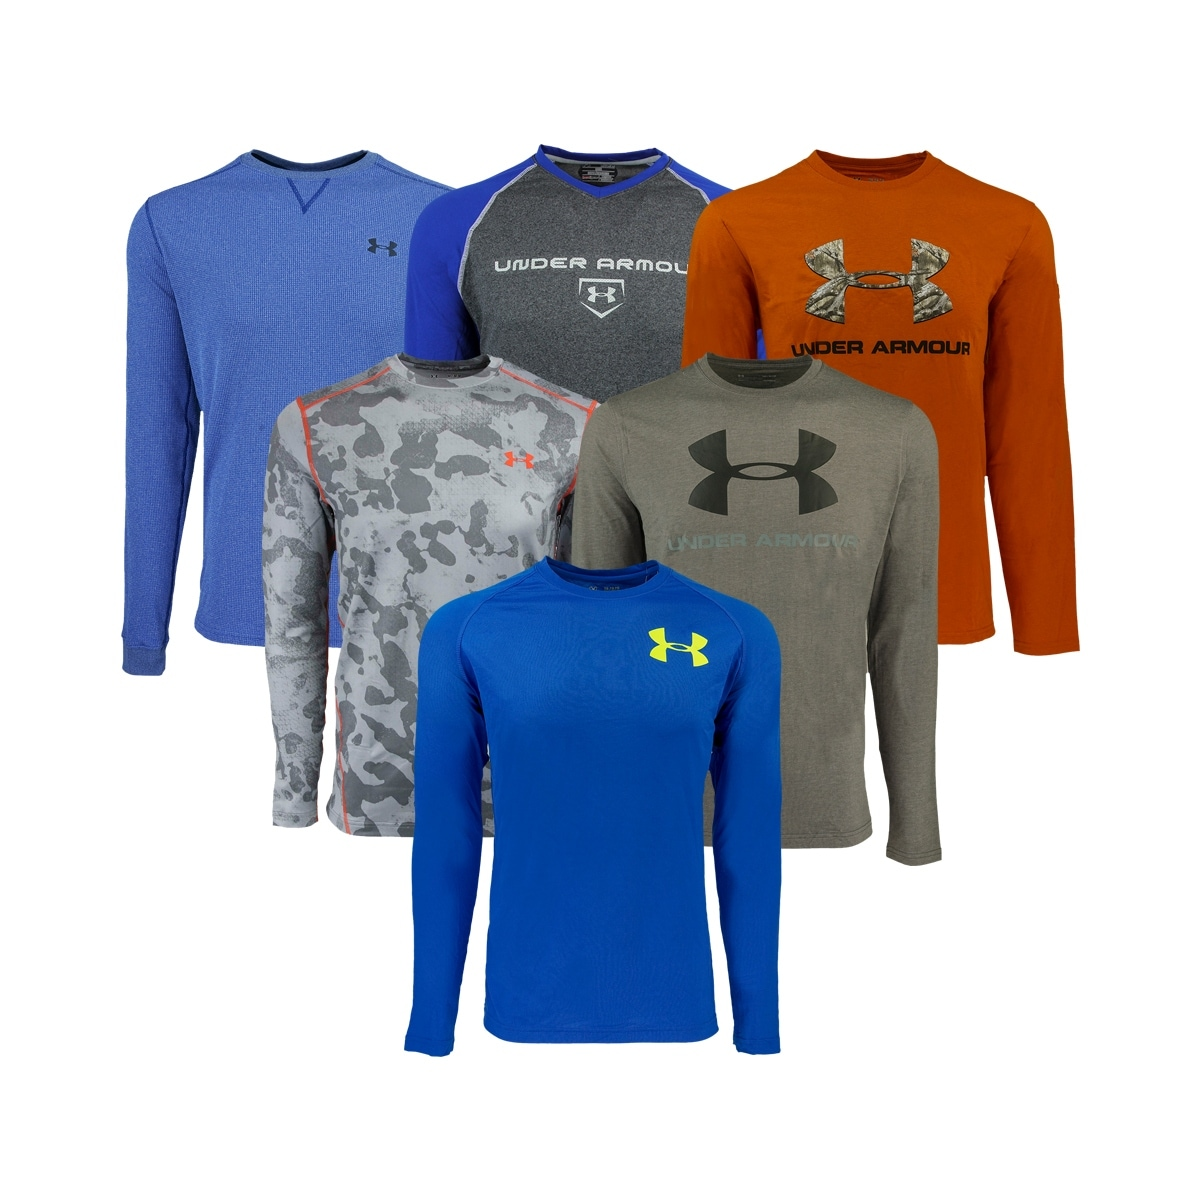 6fc28808 Under Armour Athletic Clothing | Find Great Men's Activewear Deals Shopping  at Overstock